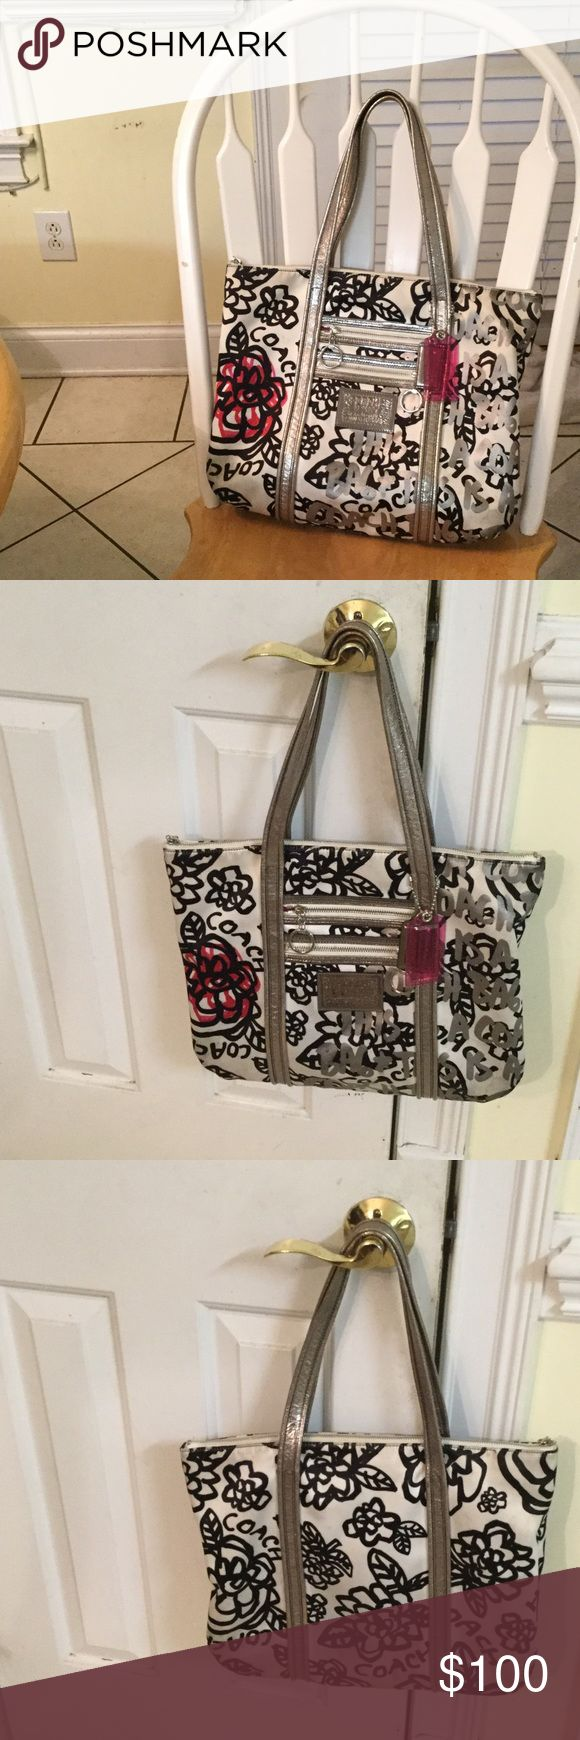 Coach Poppy Graffiti Tote Good condition large tote #14741 Coach Bags Totes